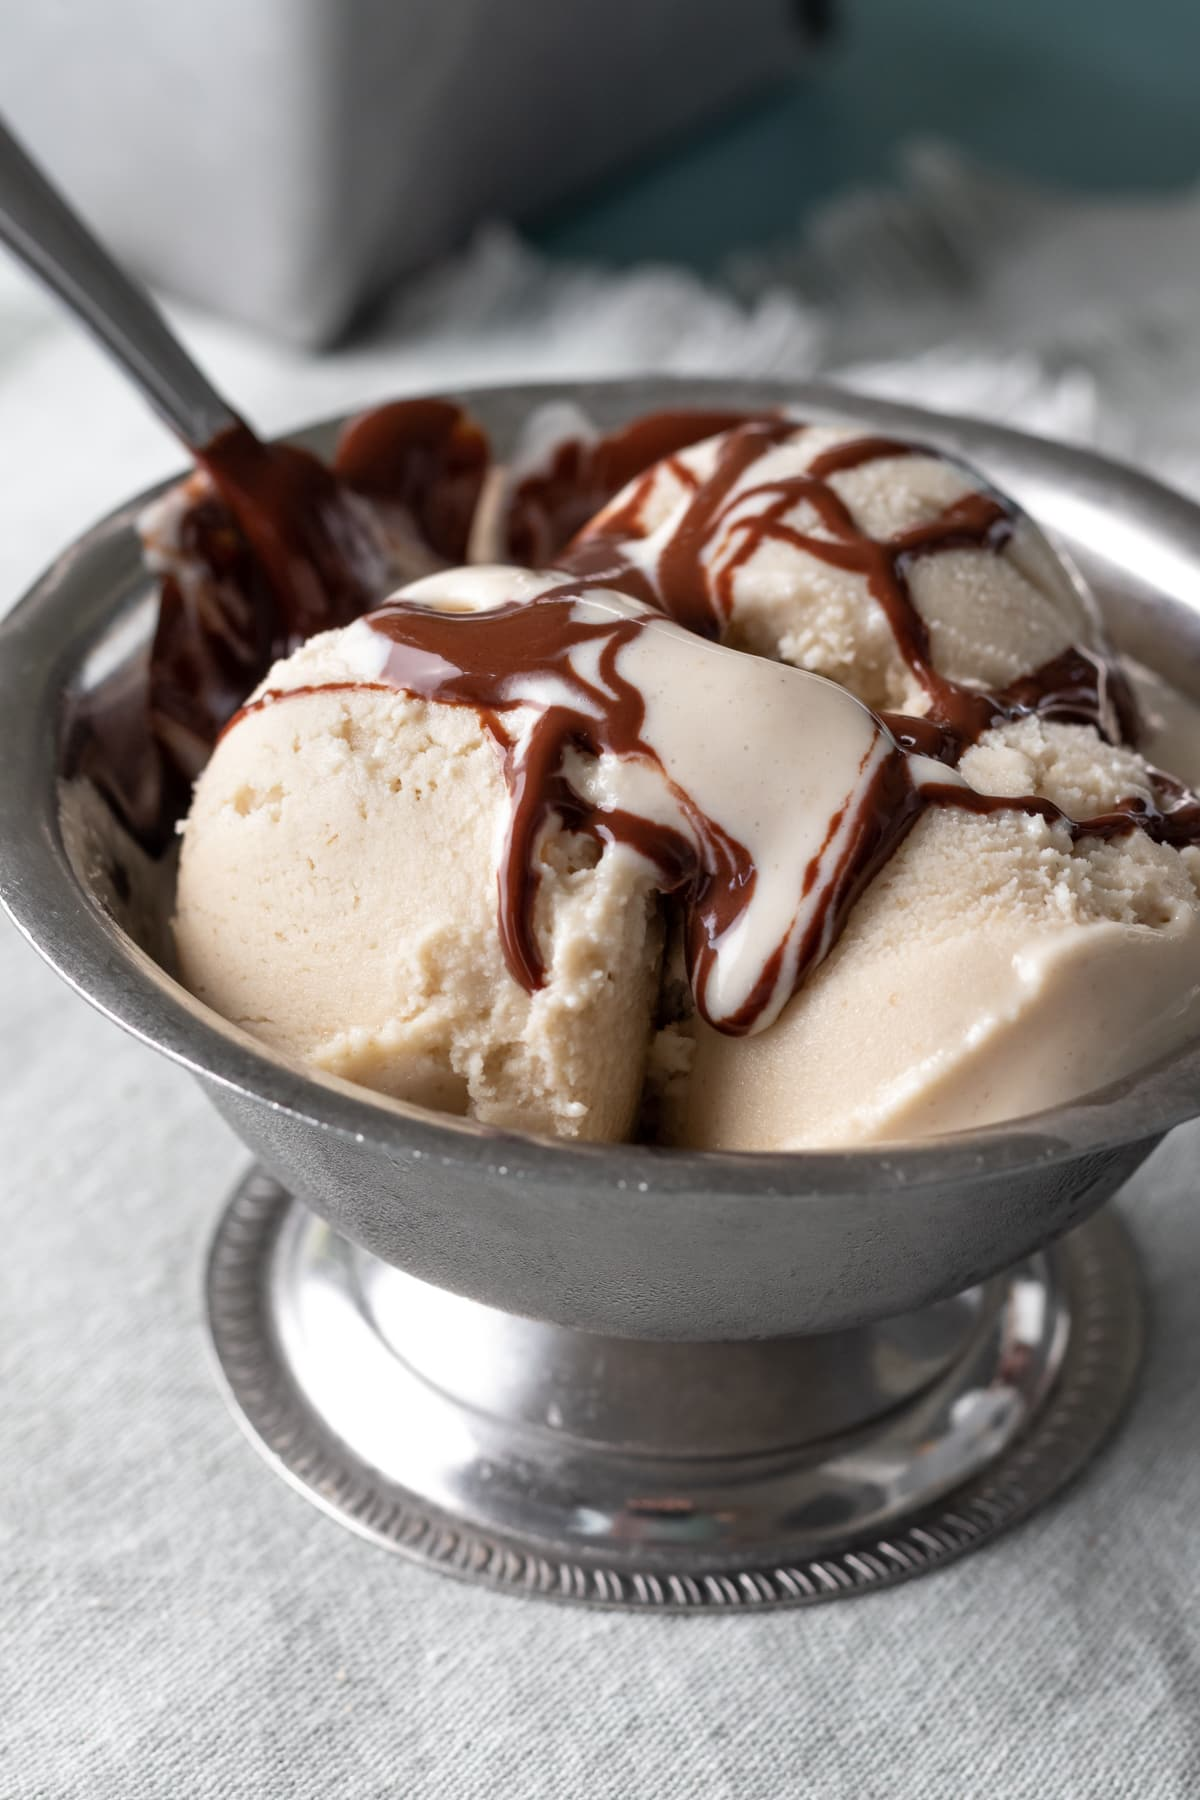 chocolate syrup drizzled on vanilla ice cream in a bowl